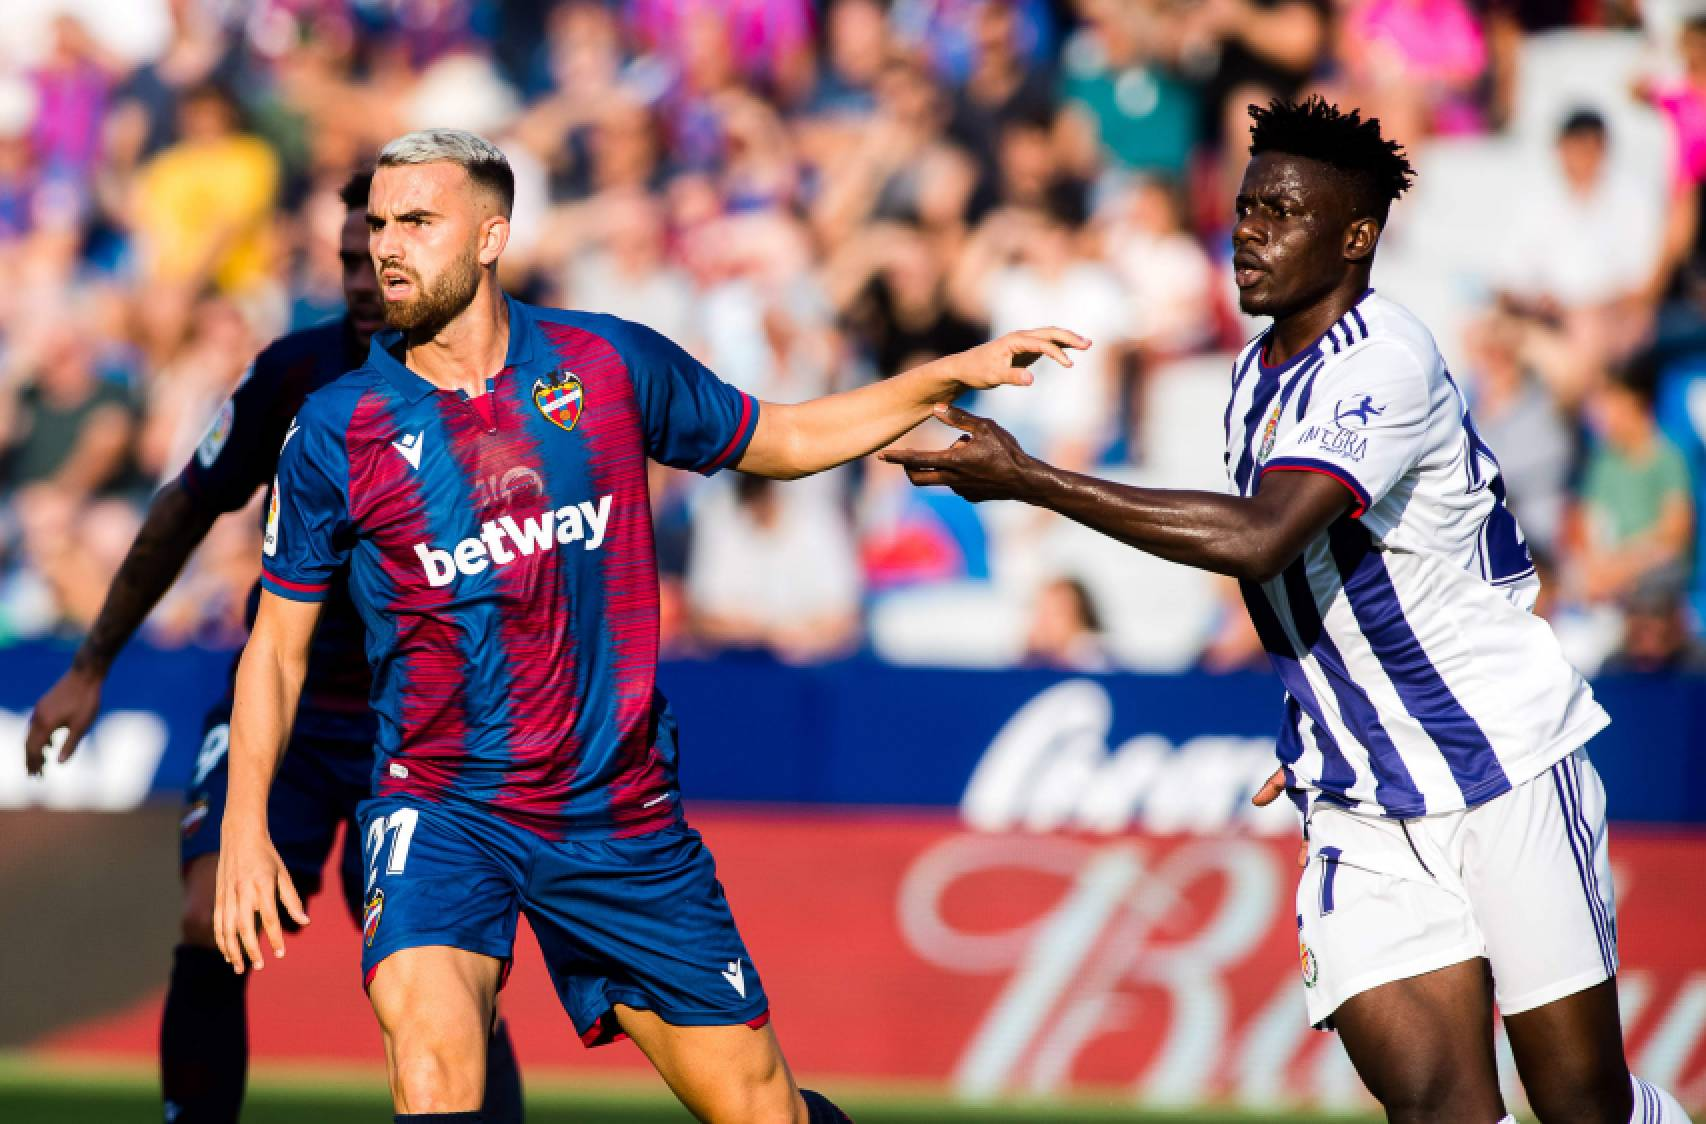 LaLiga Santander Matchday 20 preview: The second half of the season starts here